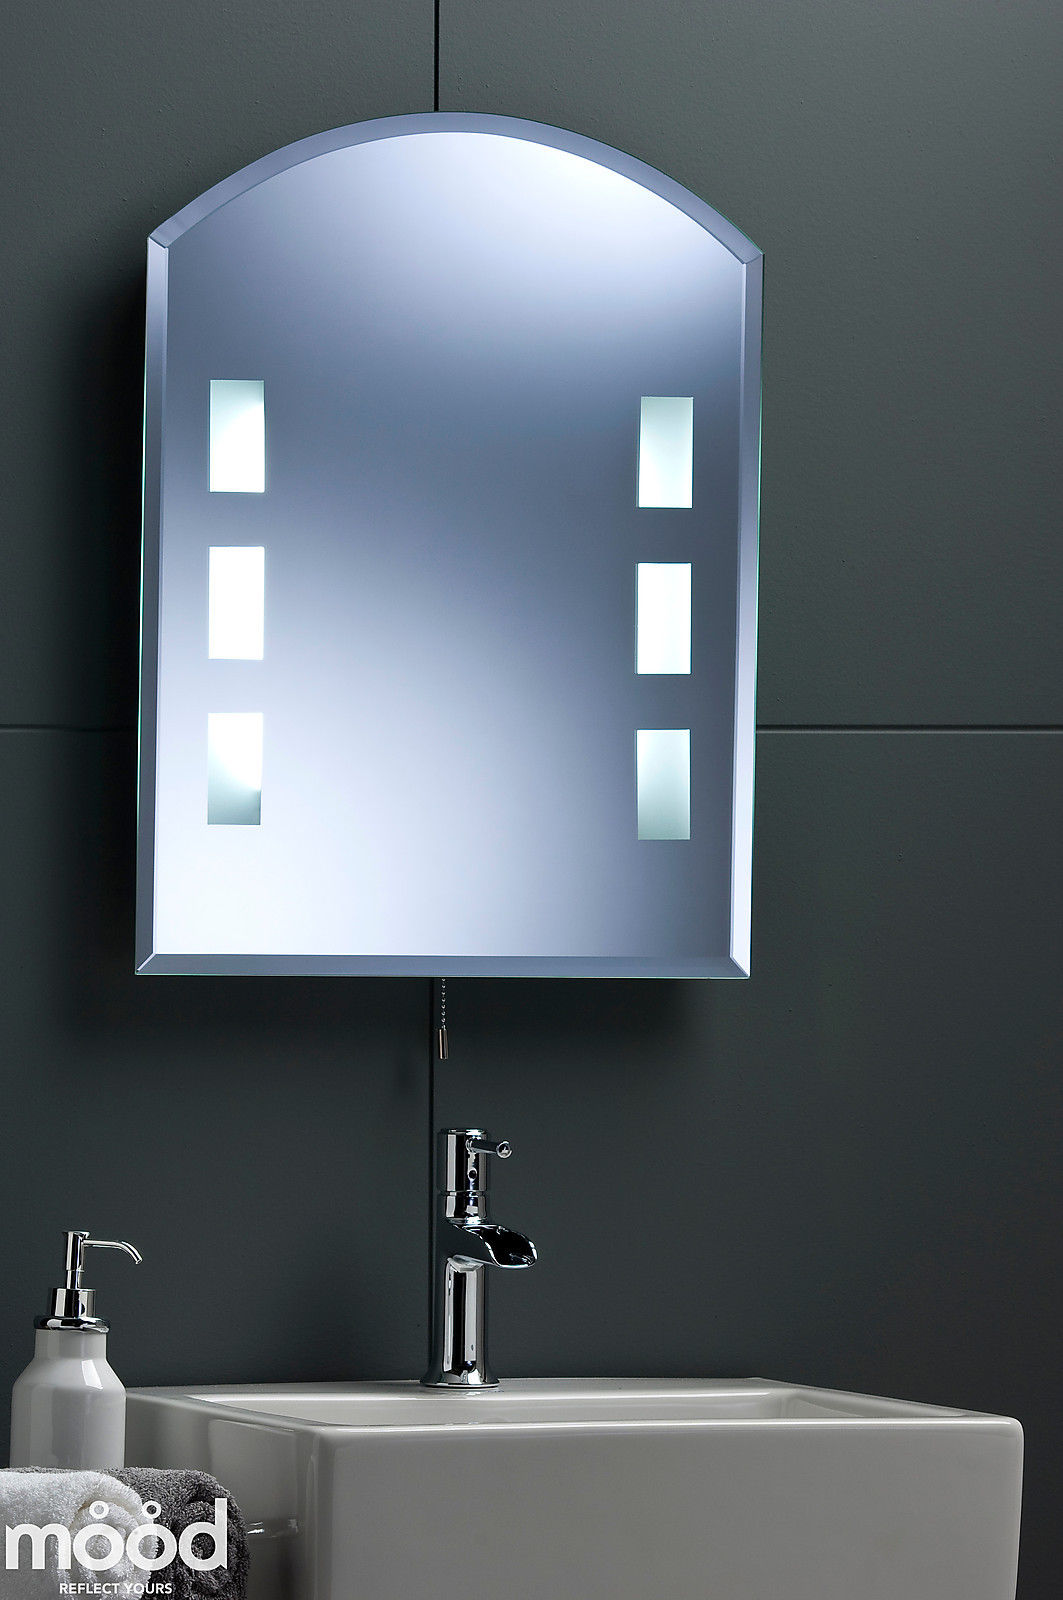 Modern bathroom wall mirror illuminated arch led back lit 60x45 cm ebay Neue design bathroom mirror